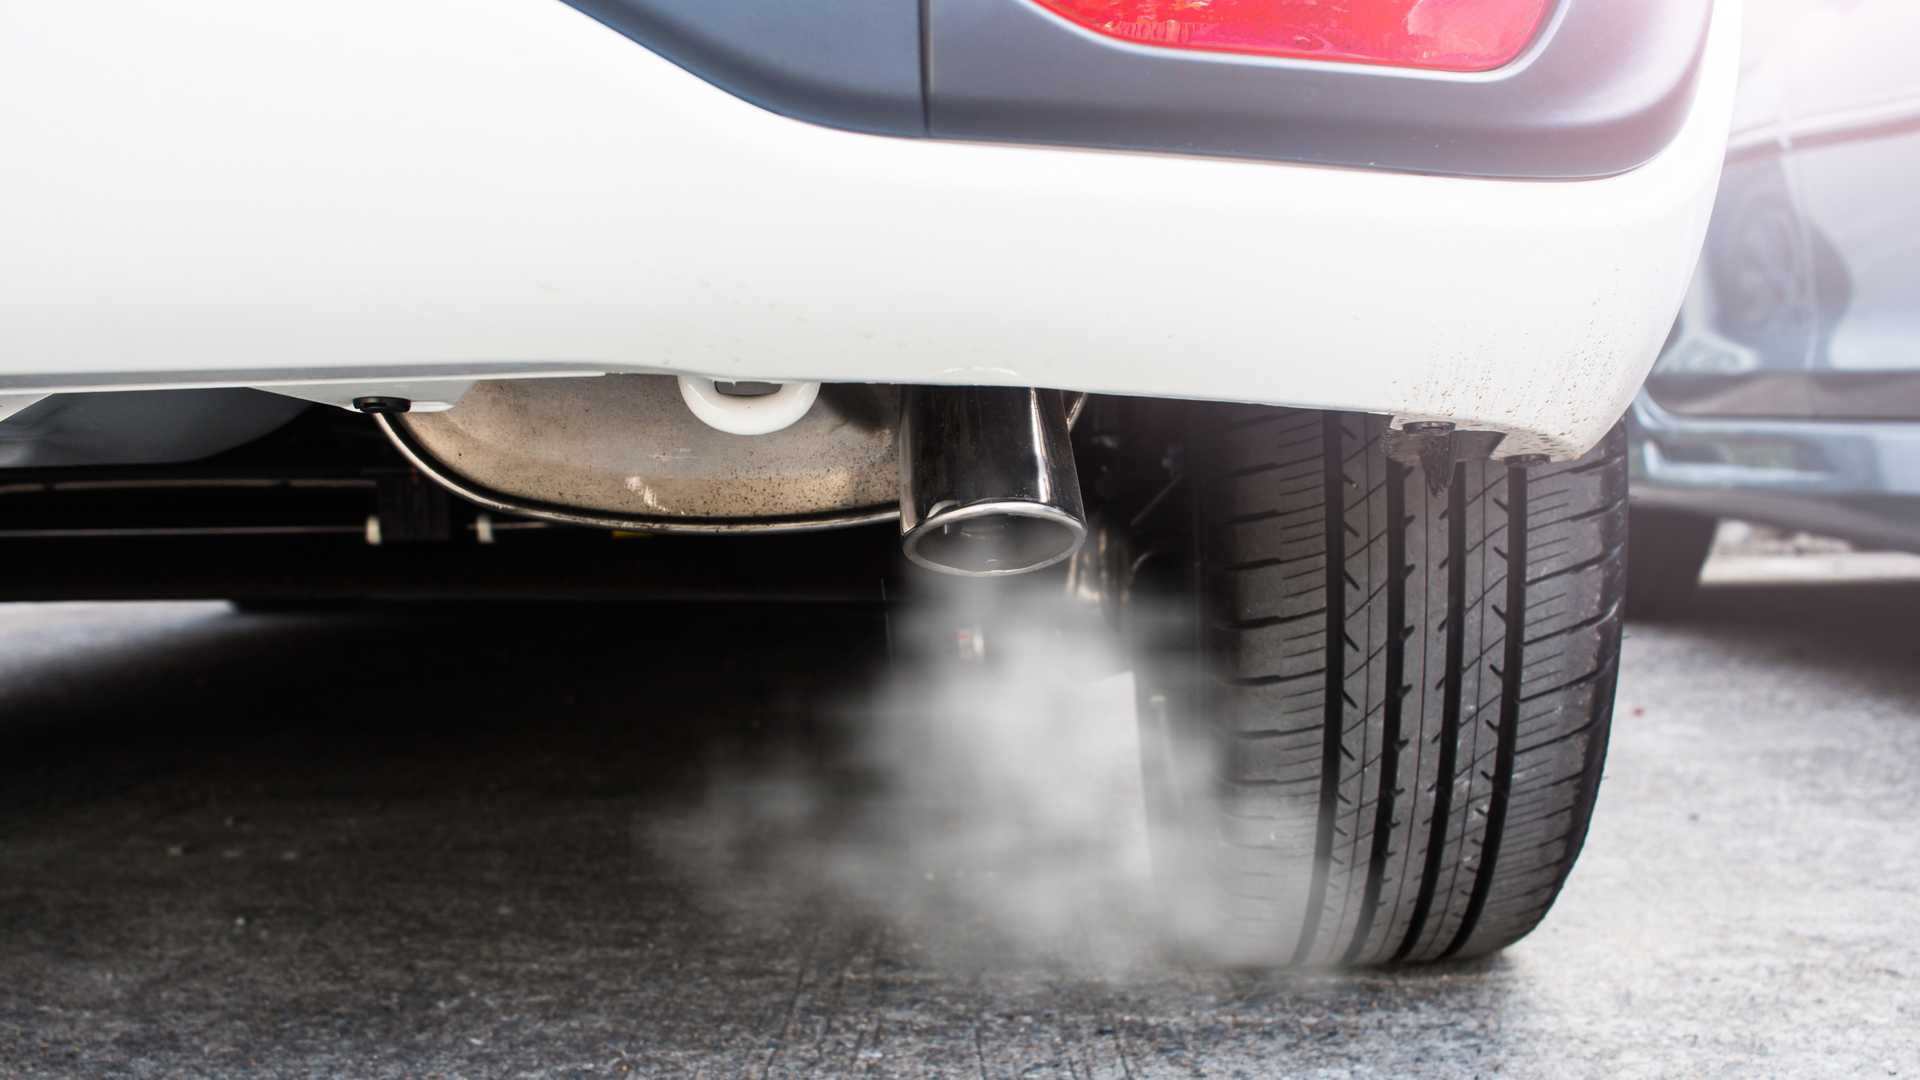 Councils want more powers to tackle air pollution